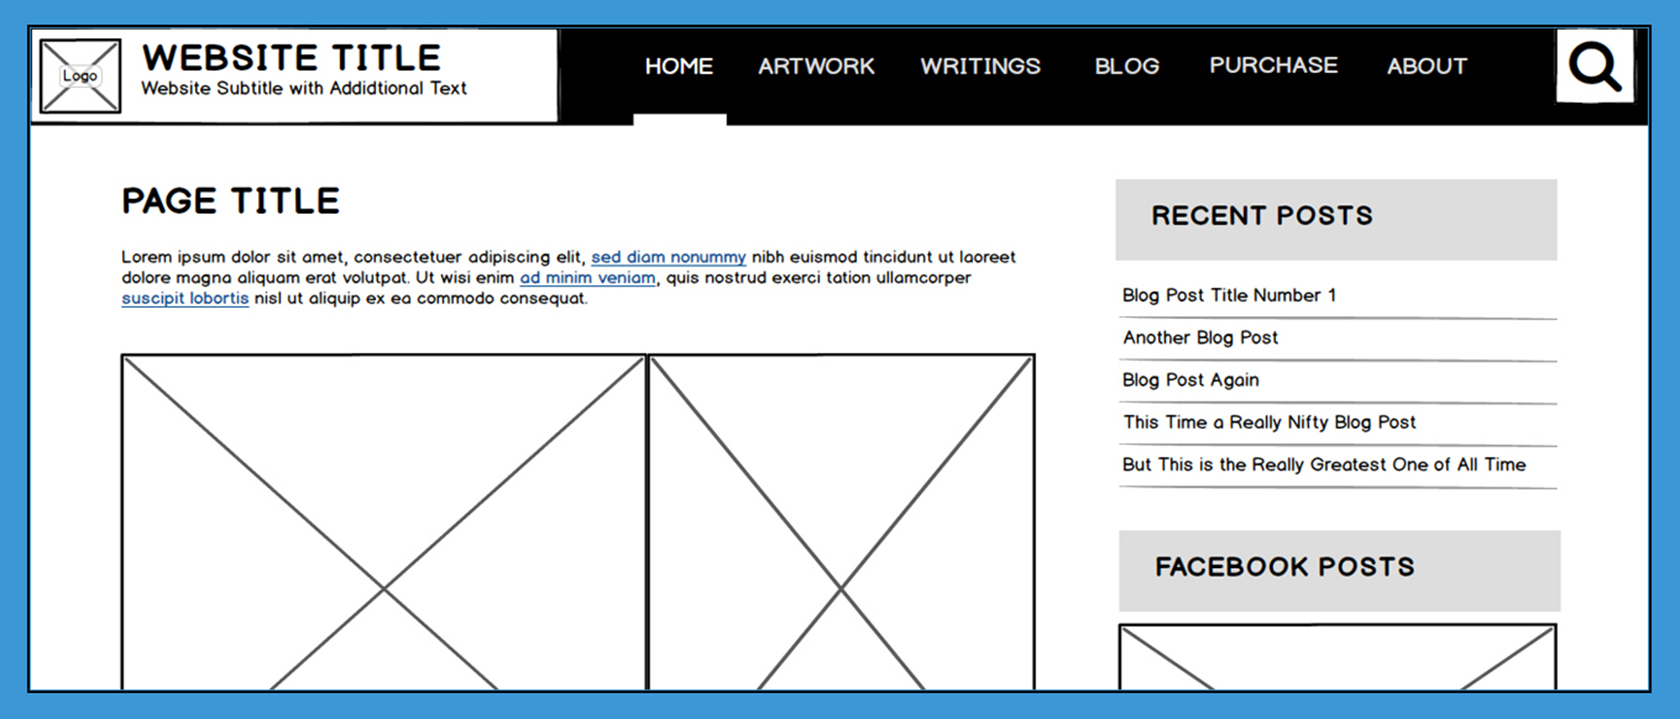 web-wireframe-featured